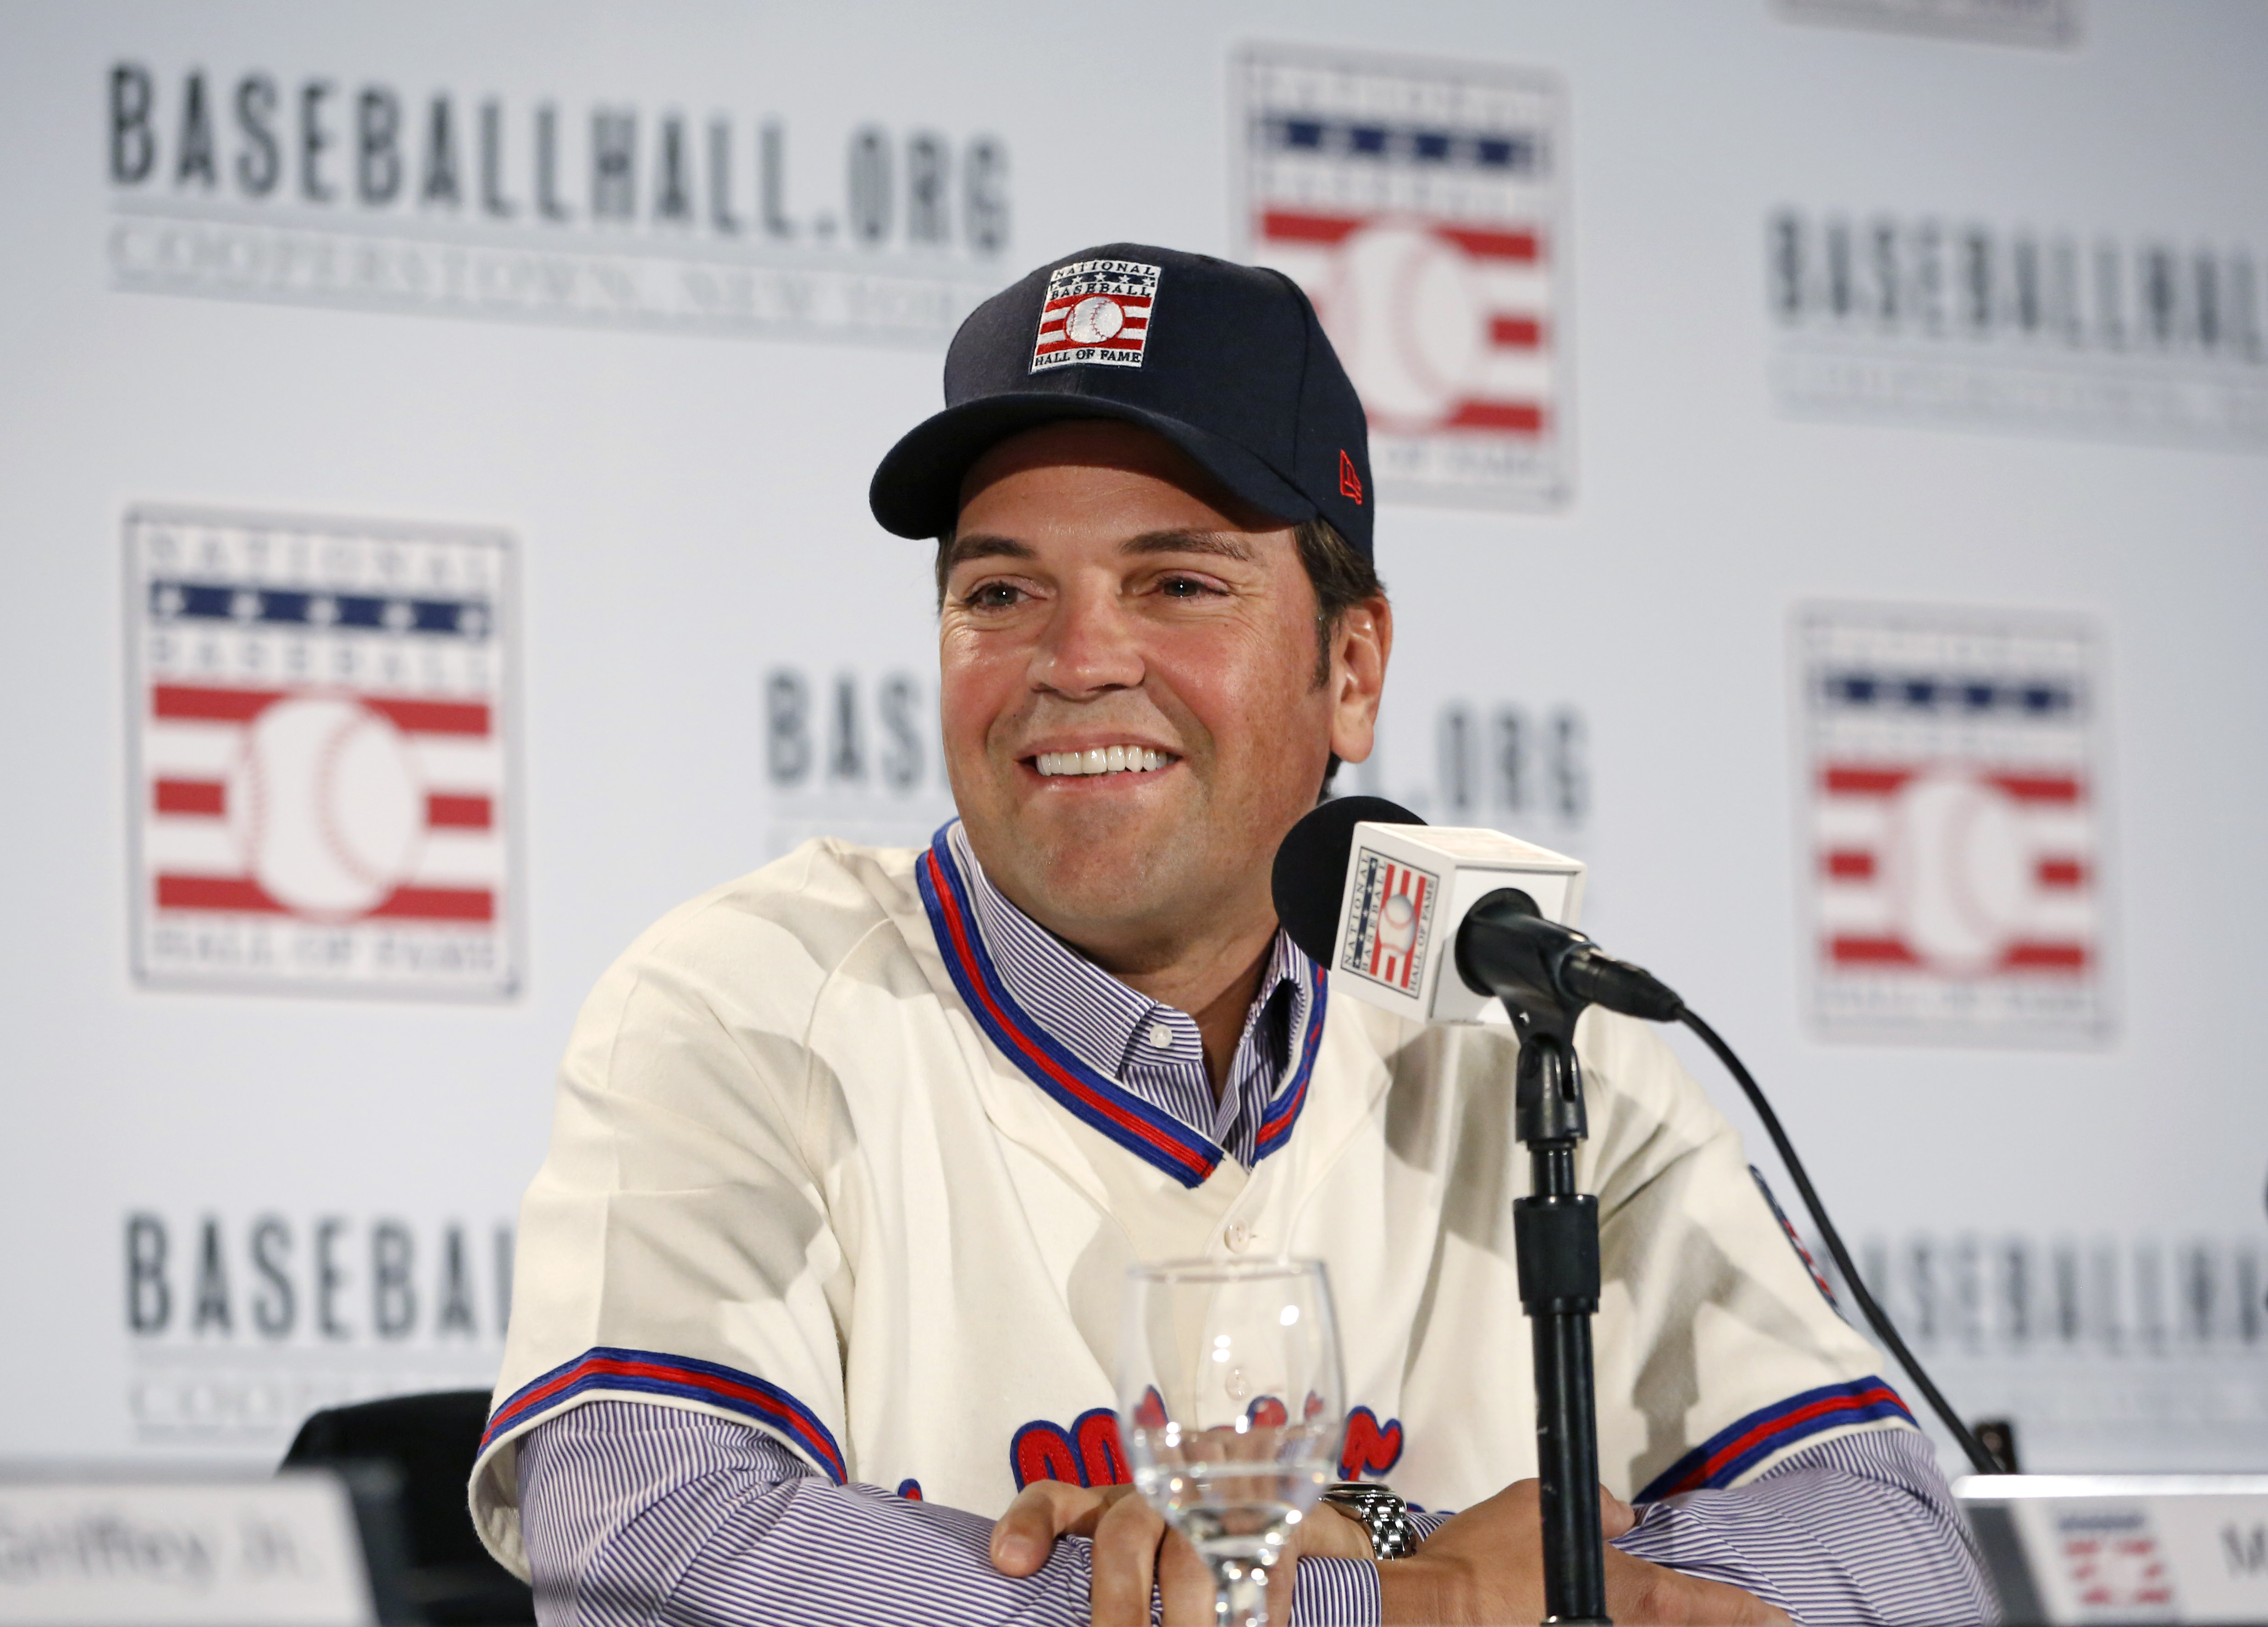 Retired New York Mets catcher Mike Piazza, smiles toward his family during at a press conference announcing his election to baseball's Hall of Fame, Thursday, Jan. 7, 2016, in New York. (AP Photo/Kathy Willens)